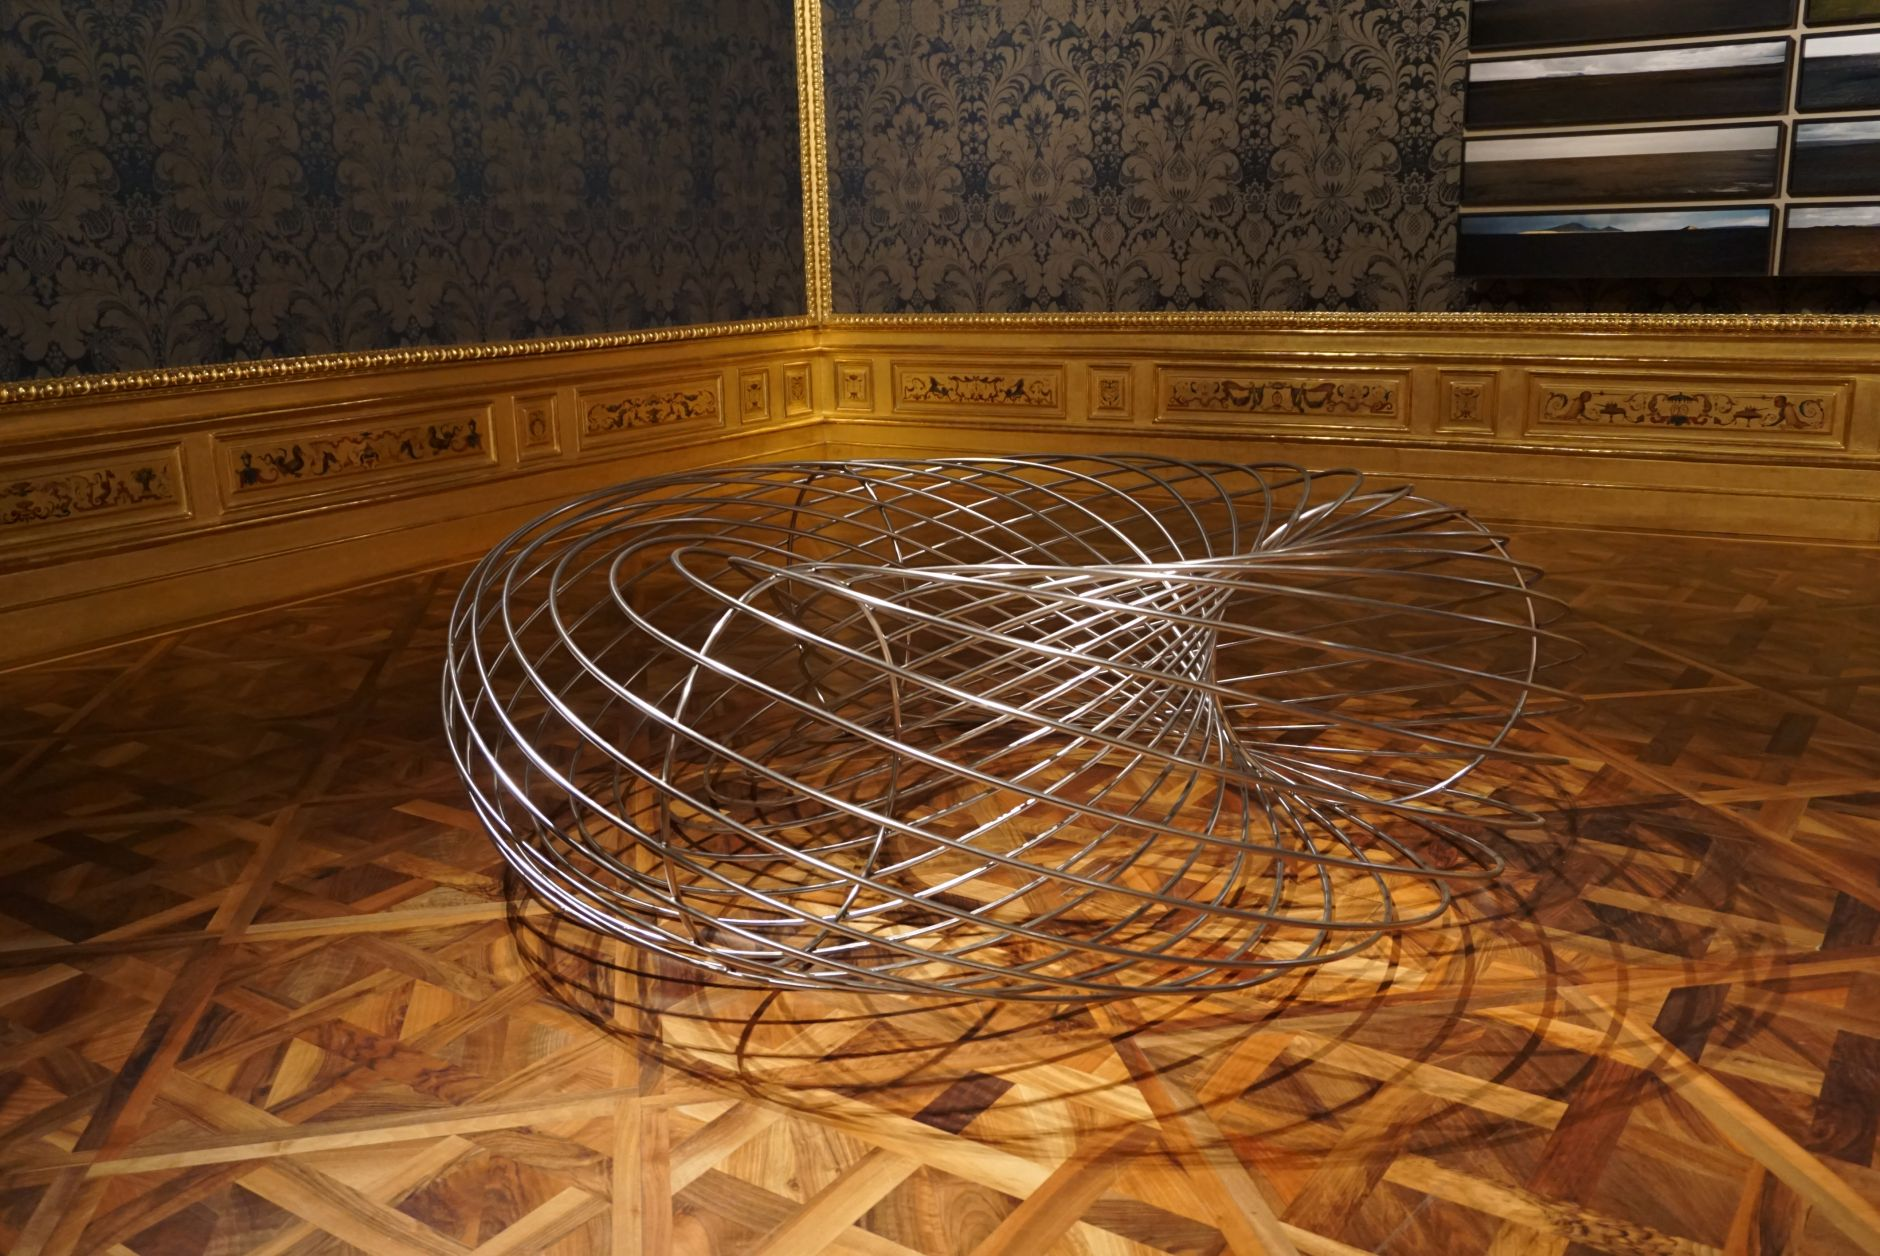 dc-art-olafur-eliasson-baroque-baroque-the-winter-palace-of-prince-eugene-of-savoy-vienna-24